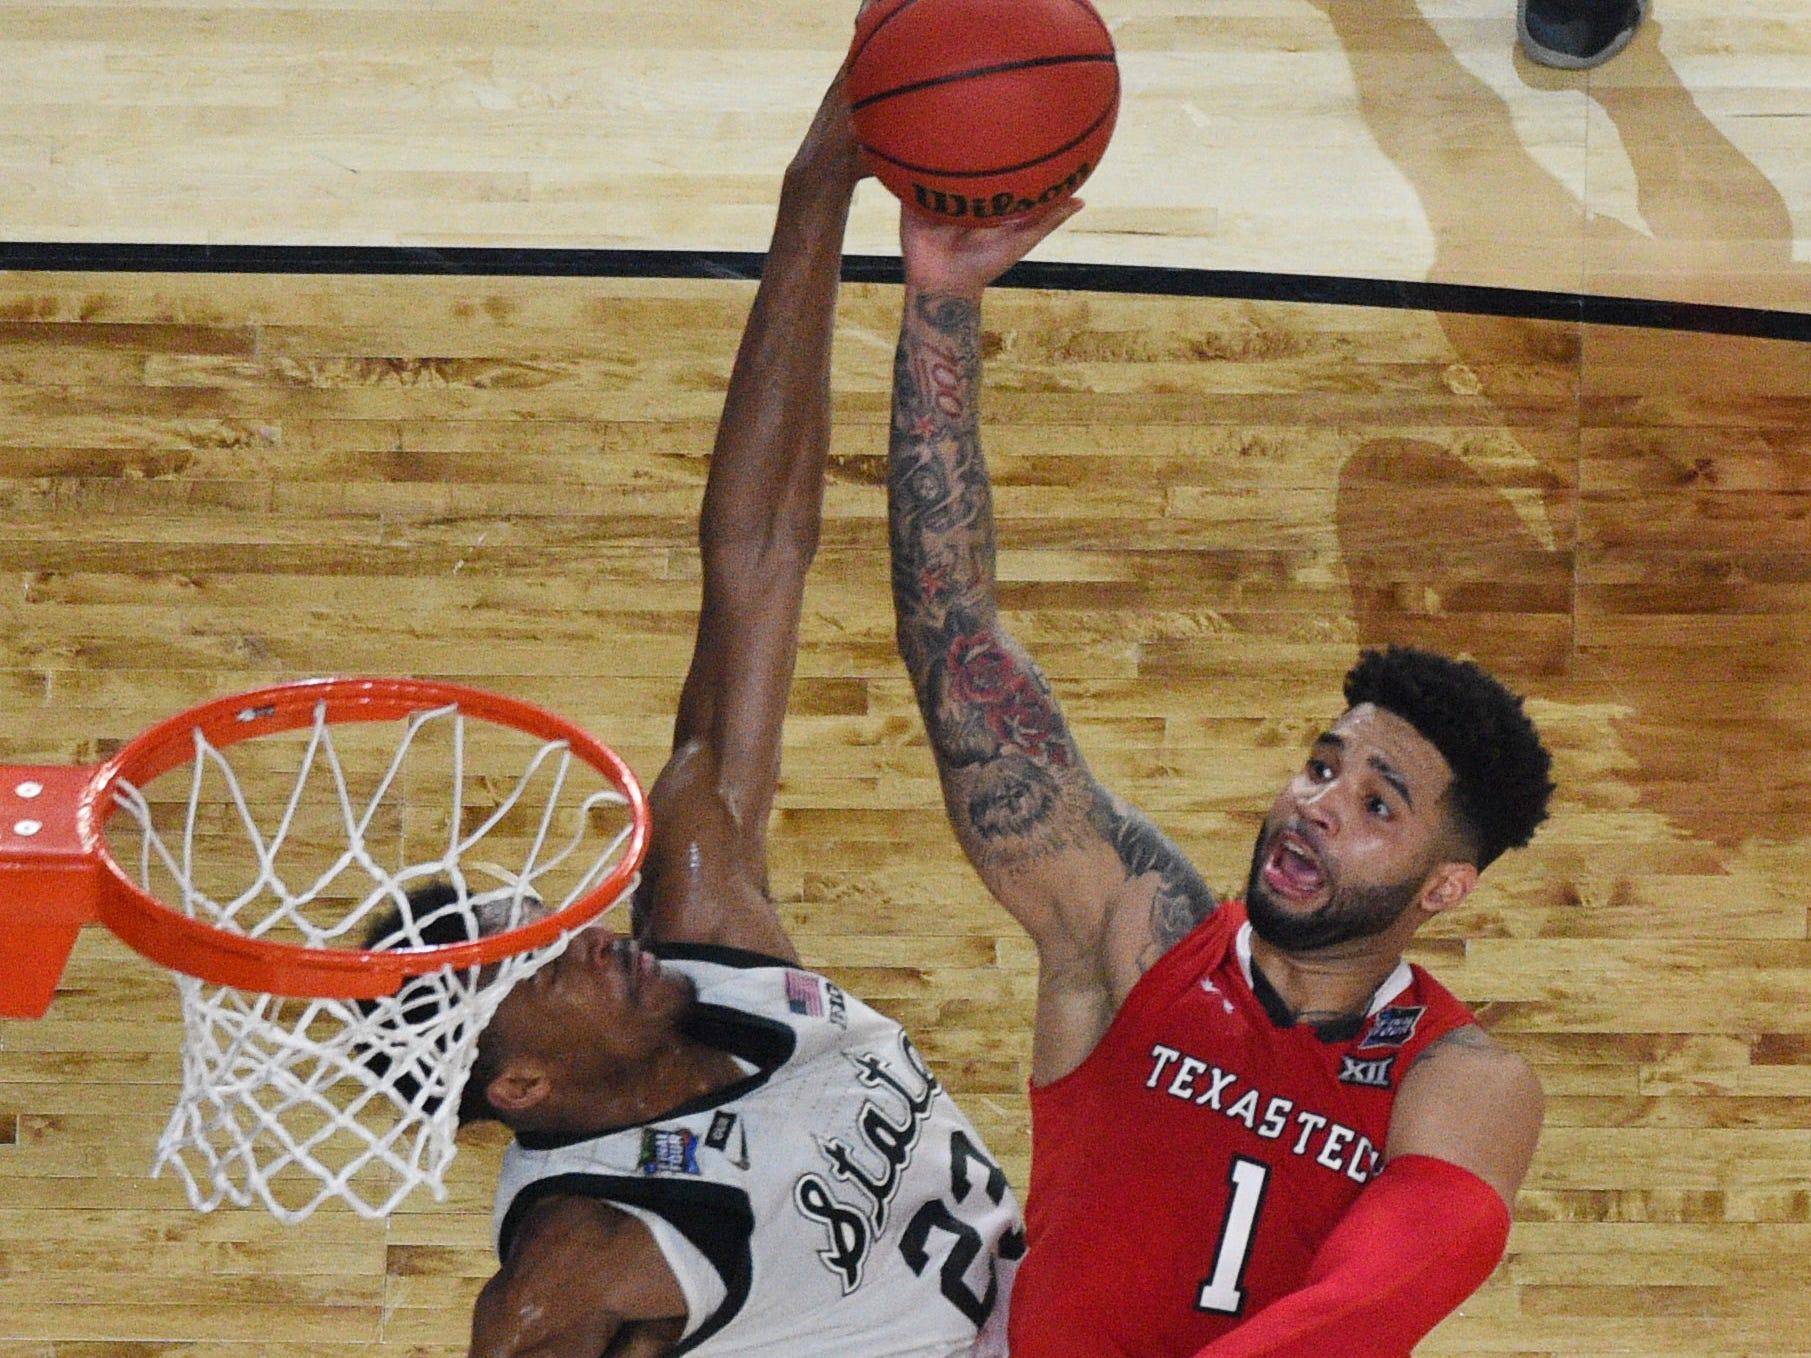 Apr 6, 2019; Minneapolis, MN, USA; Texas Tech Red Raiders guard Brandone Francis (1) shoots against Michigan State Spartans forward Xavier Tillman (23) in the second half in the semifinals of the 2019 men's Final Four at US Bank Stadium. Mandatory Credit: Robert Deutsch-USA TODAY Sports